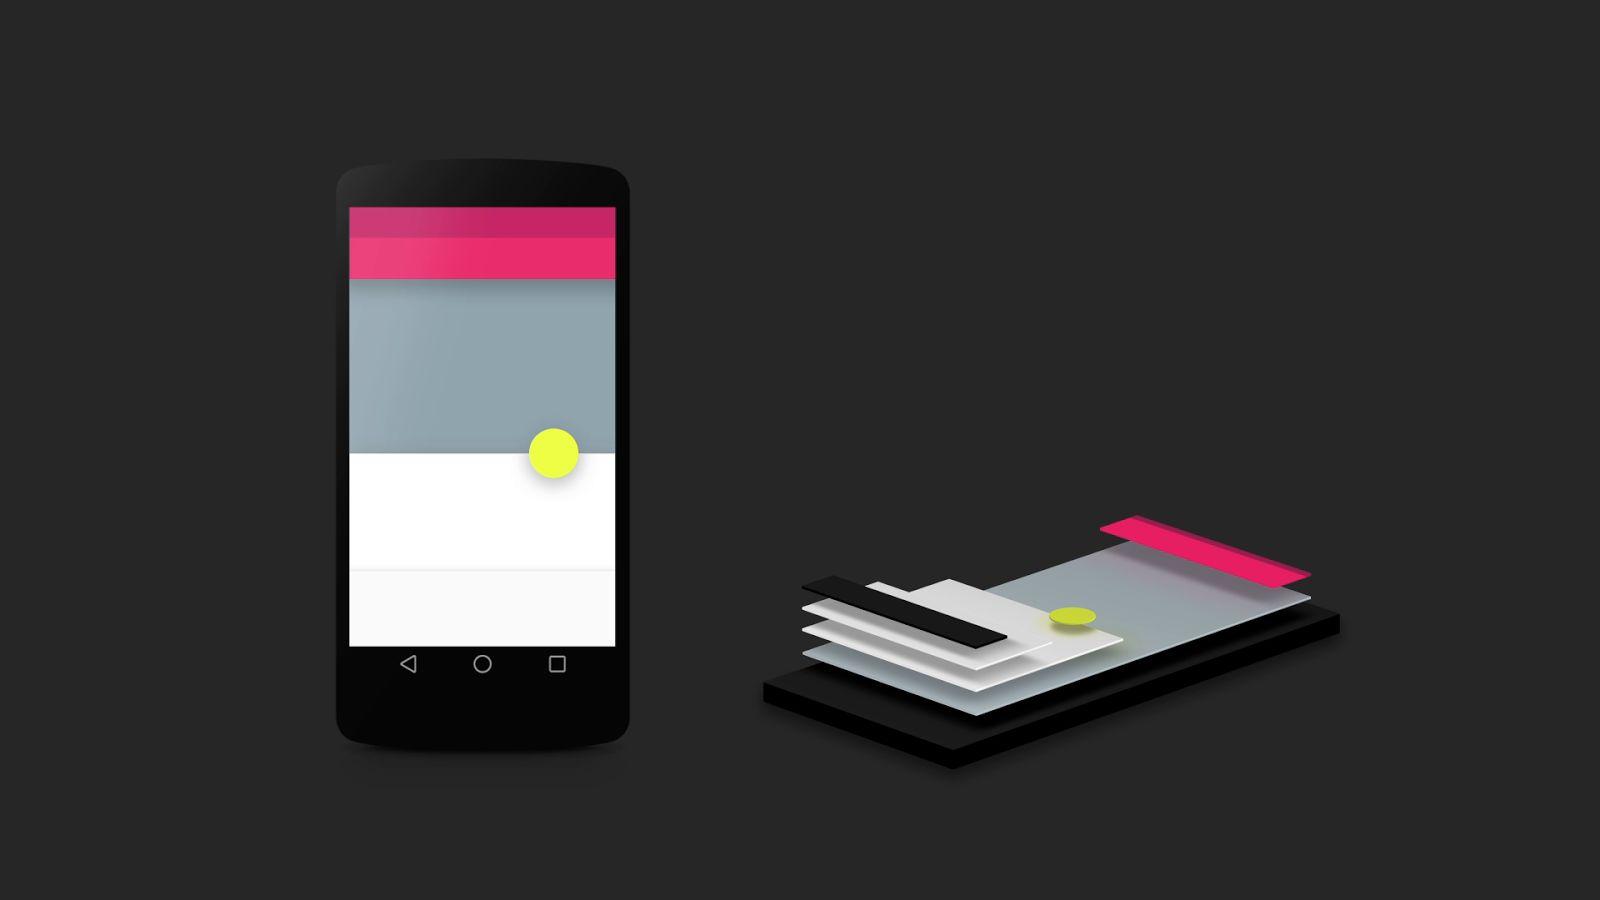 【NEXT Collections】关于实践 Material Design 的三个问题